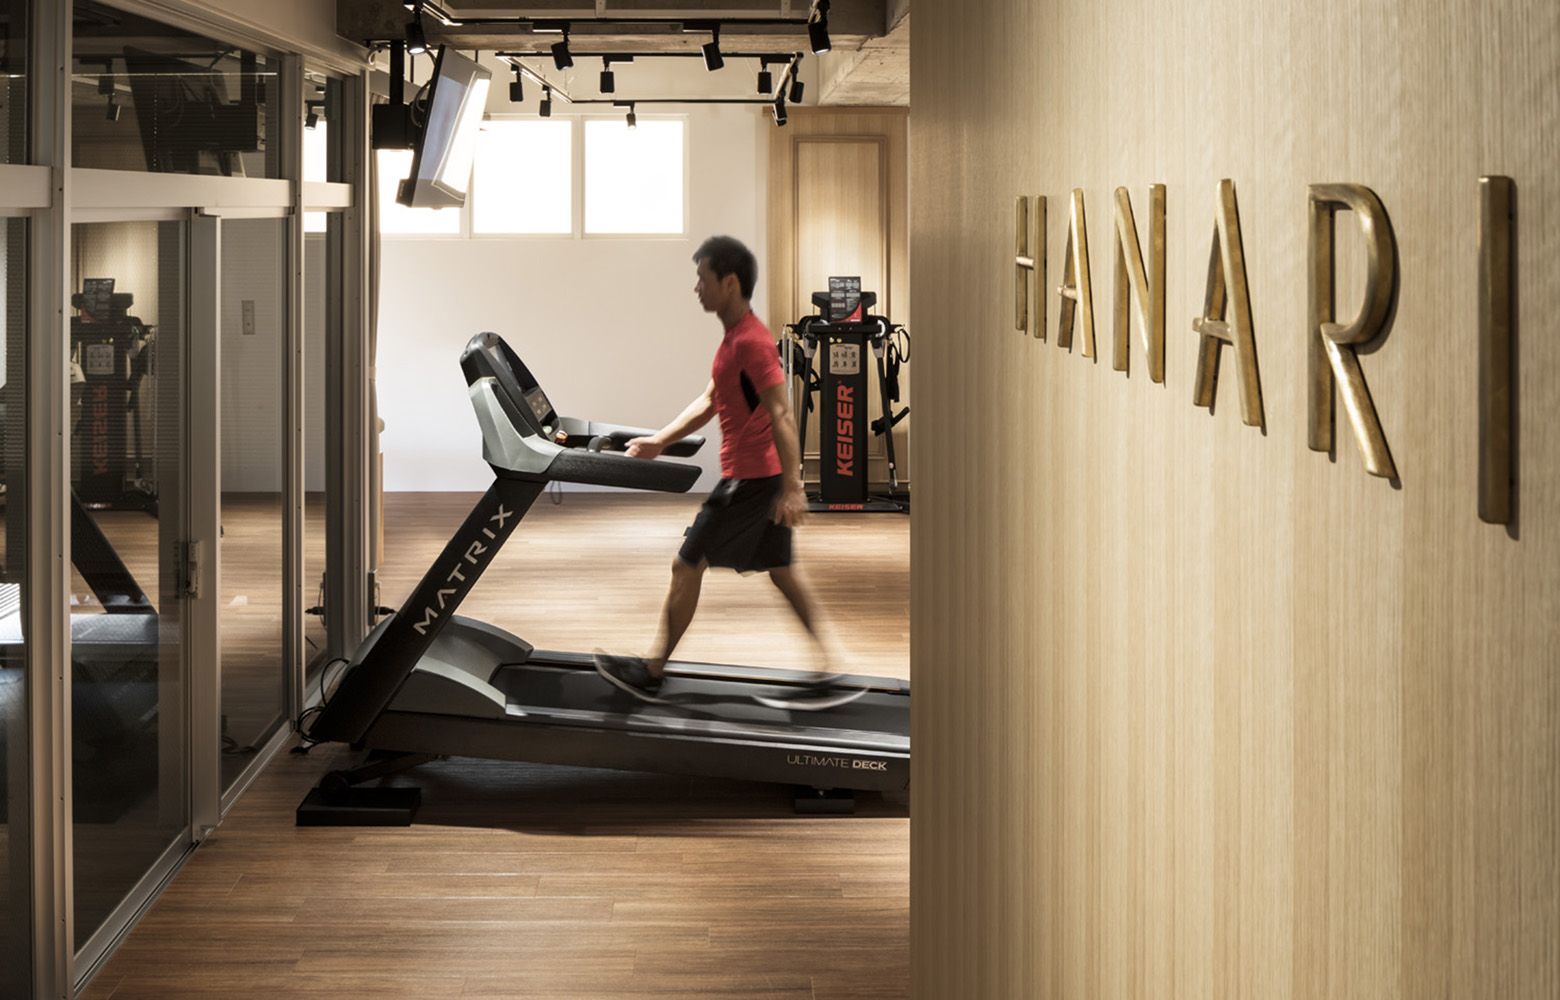 Personal Training Gym HANARI